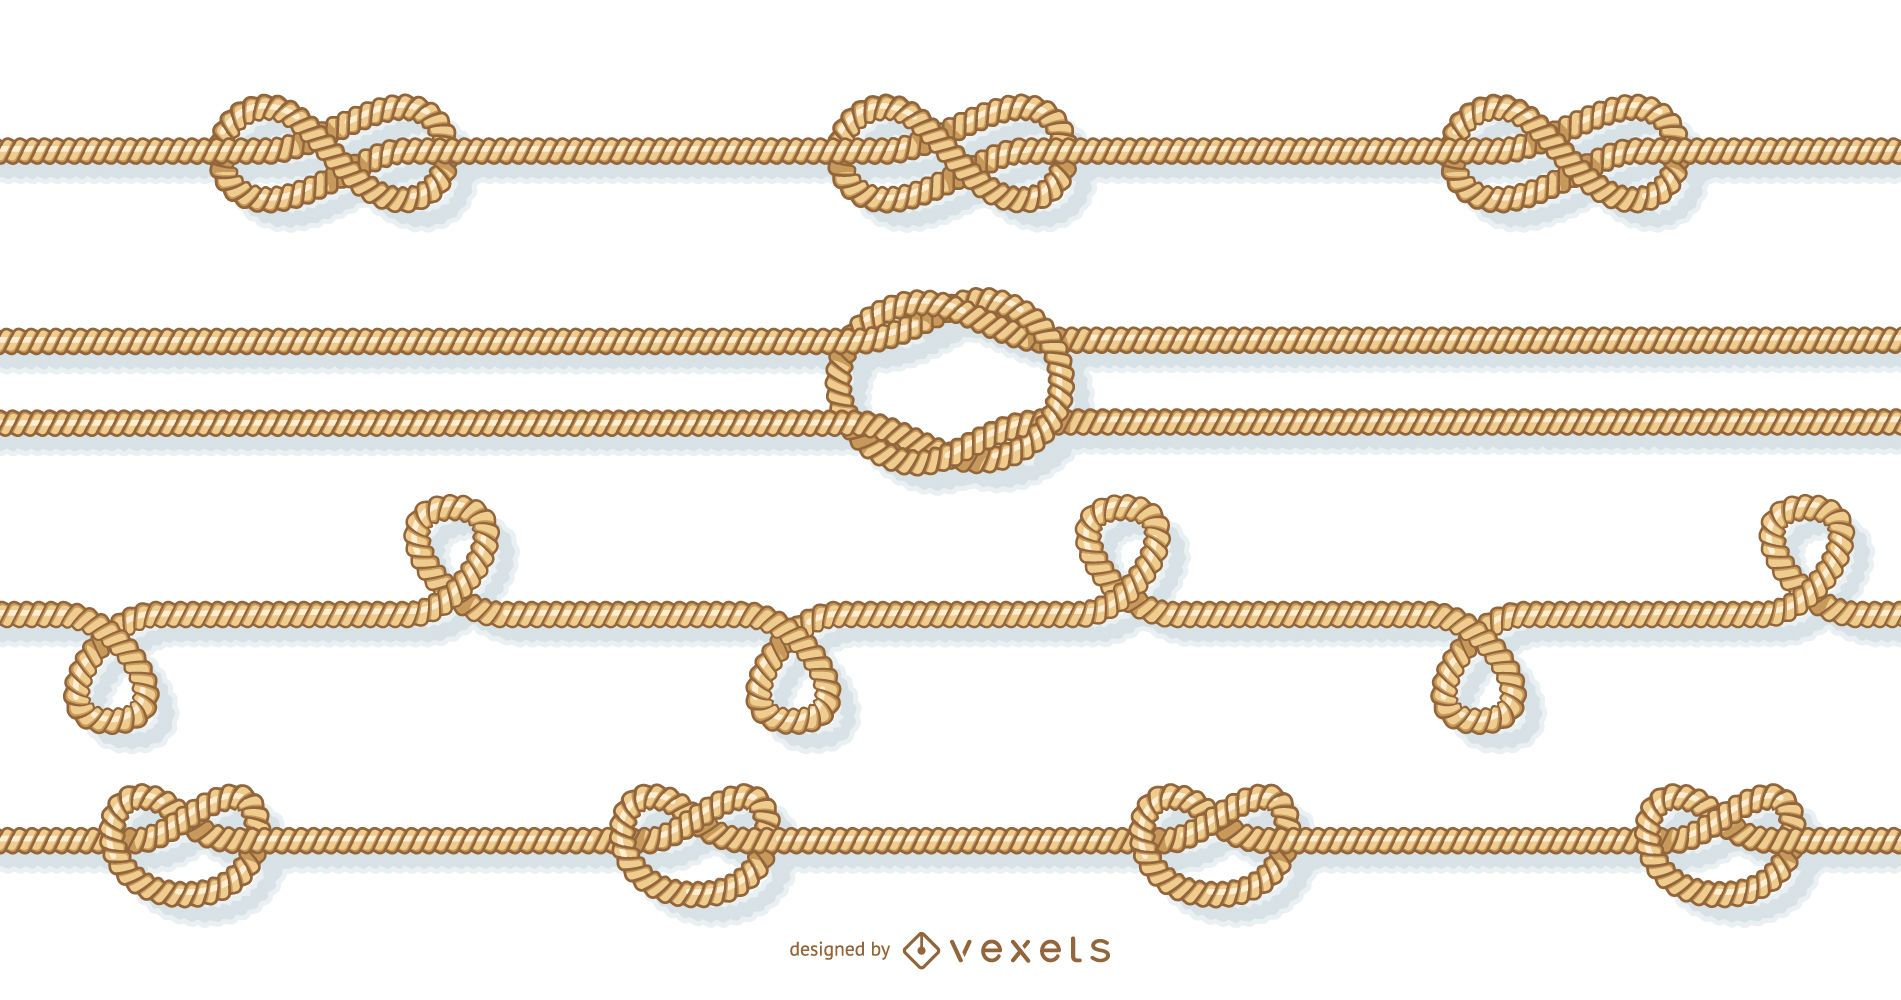 Ropes and knots elements set